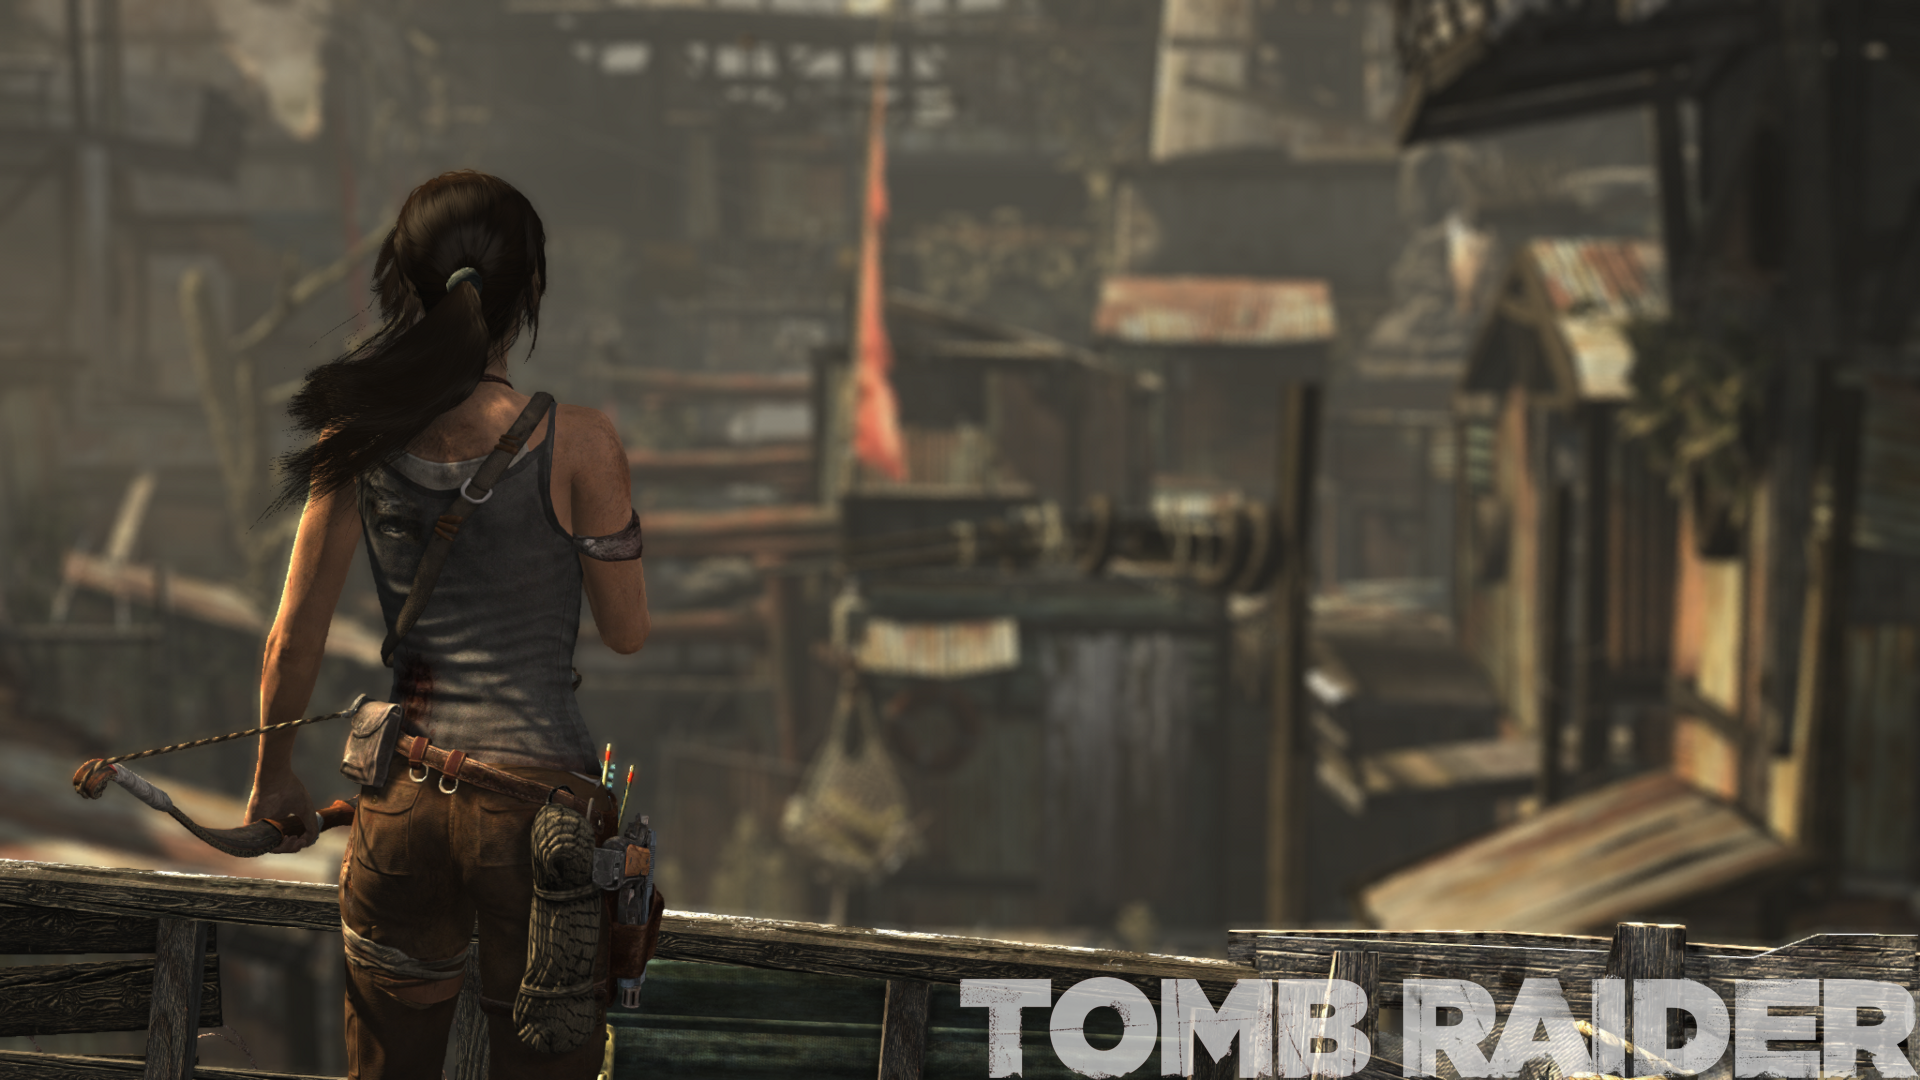 Tomb raider 2013 topless cheat exposed toons